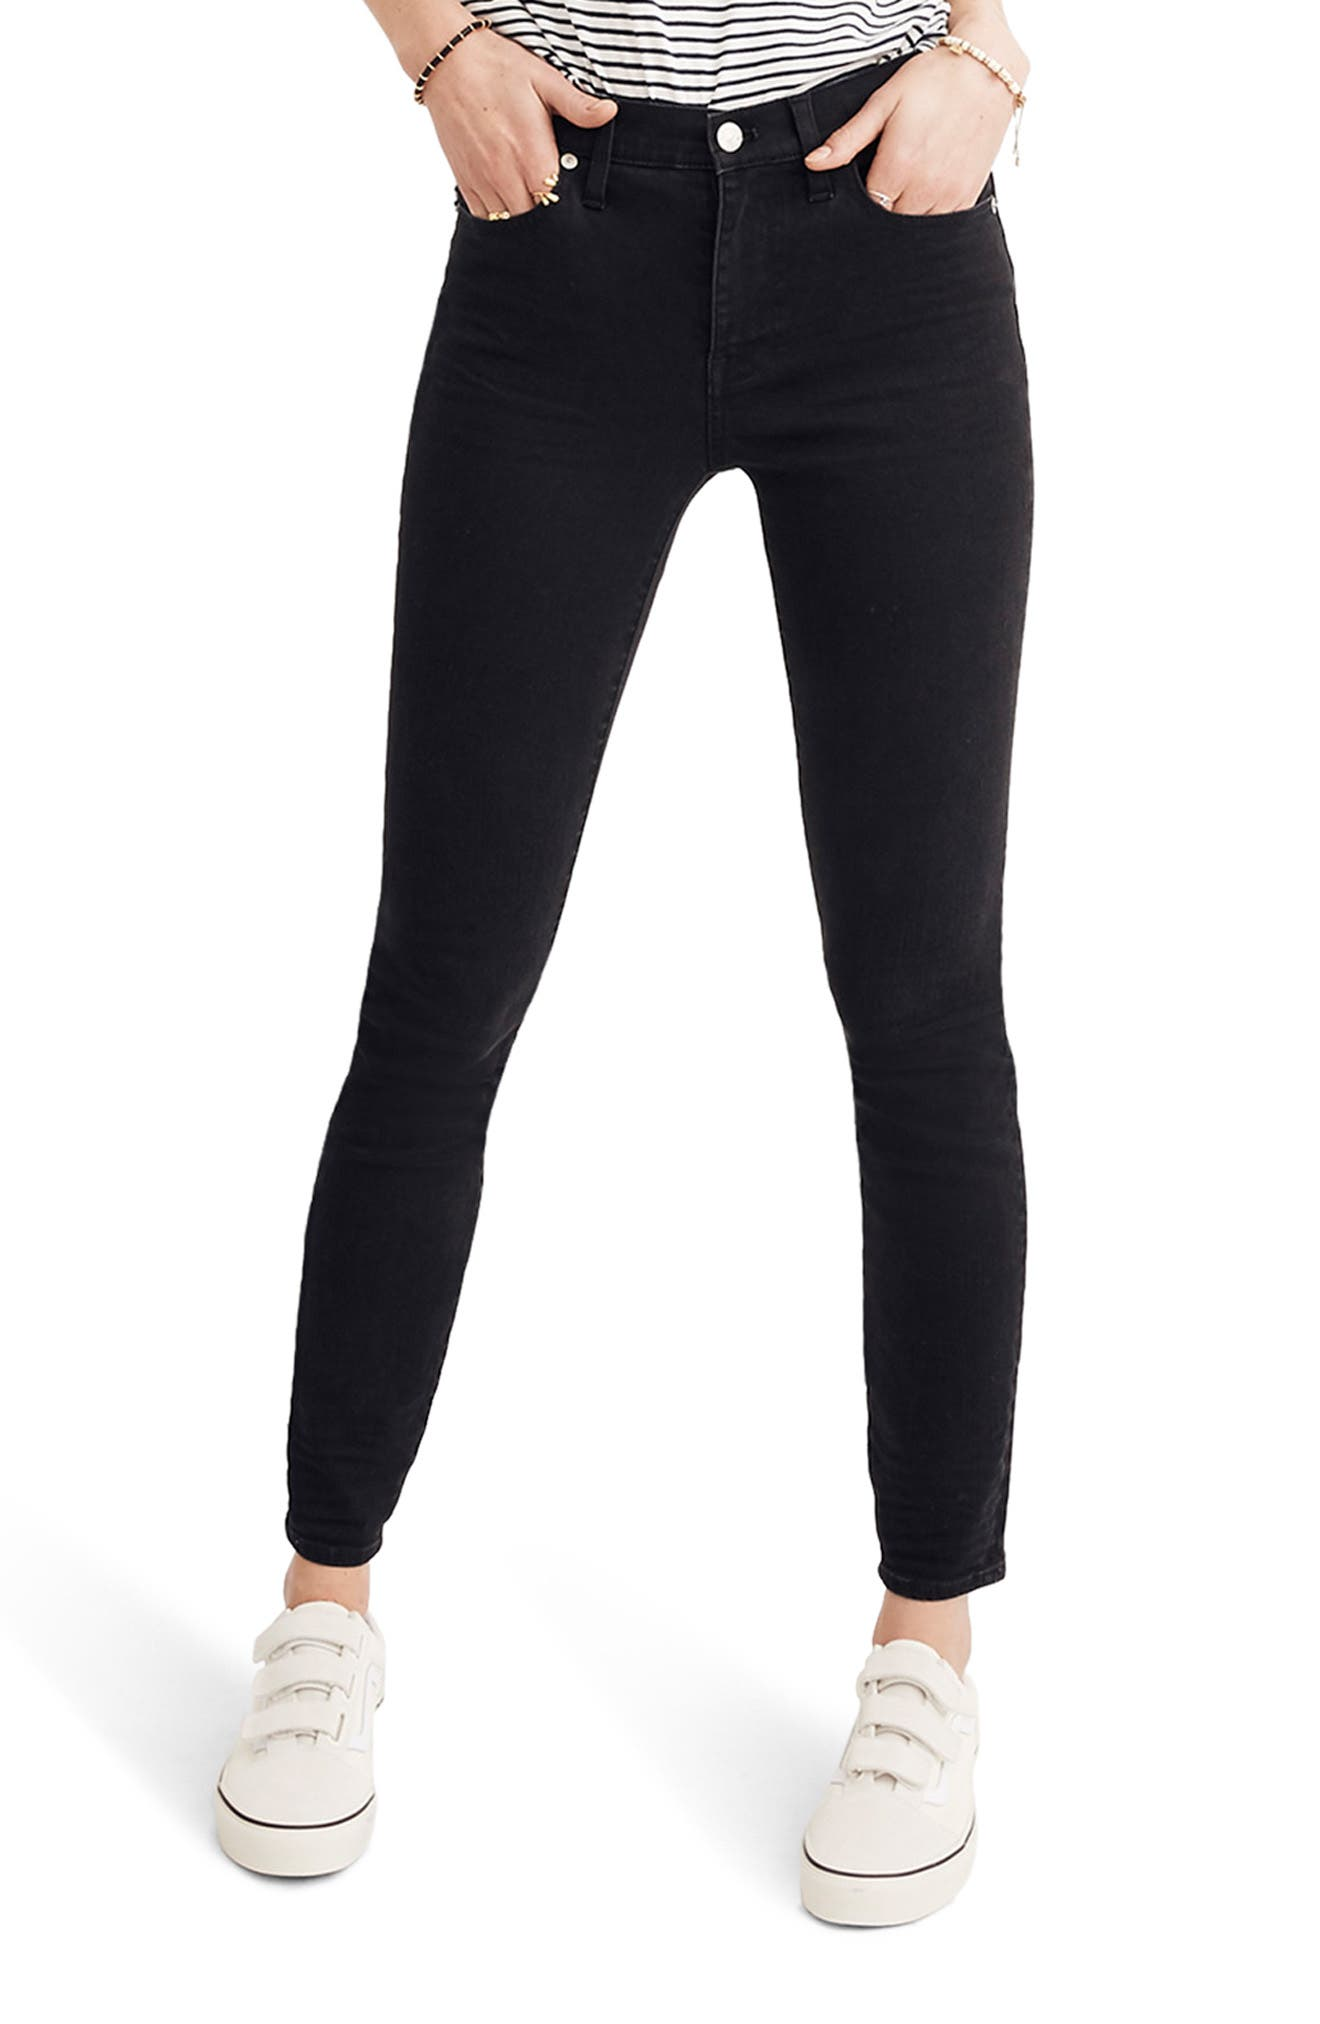 9-Inch High Rise Skinny Jeans,                             Main thumbnail 1, color,                             LUNAR